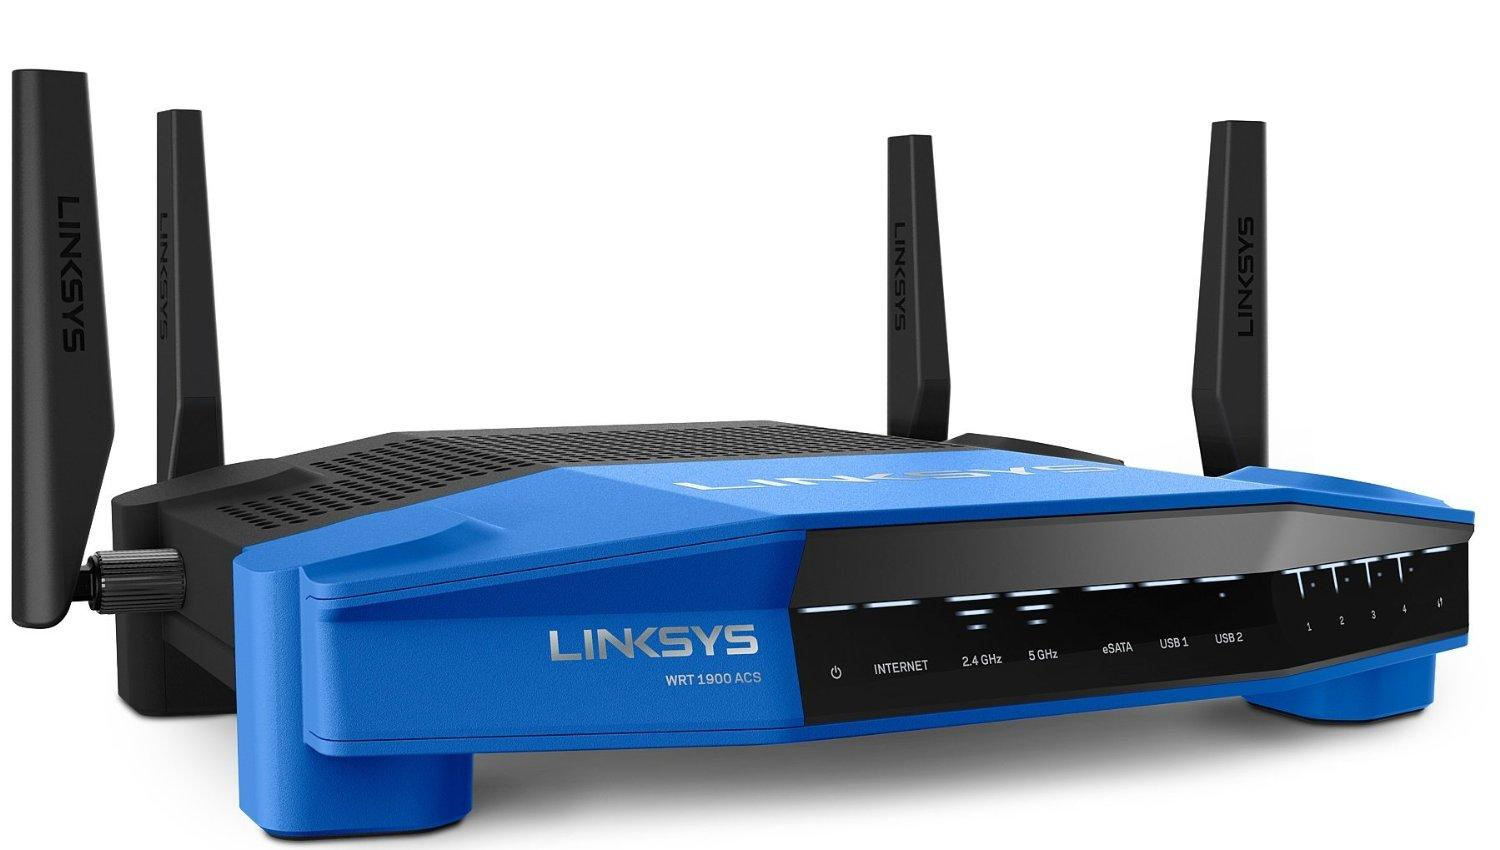 Linksys WRT1900ACS Dual-Band Smart Wi-Fi Gigabit Router